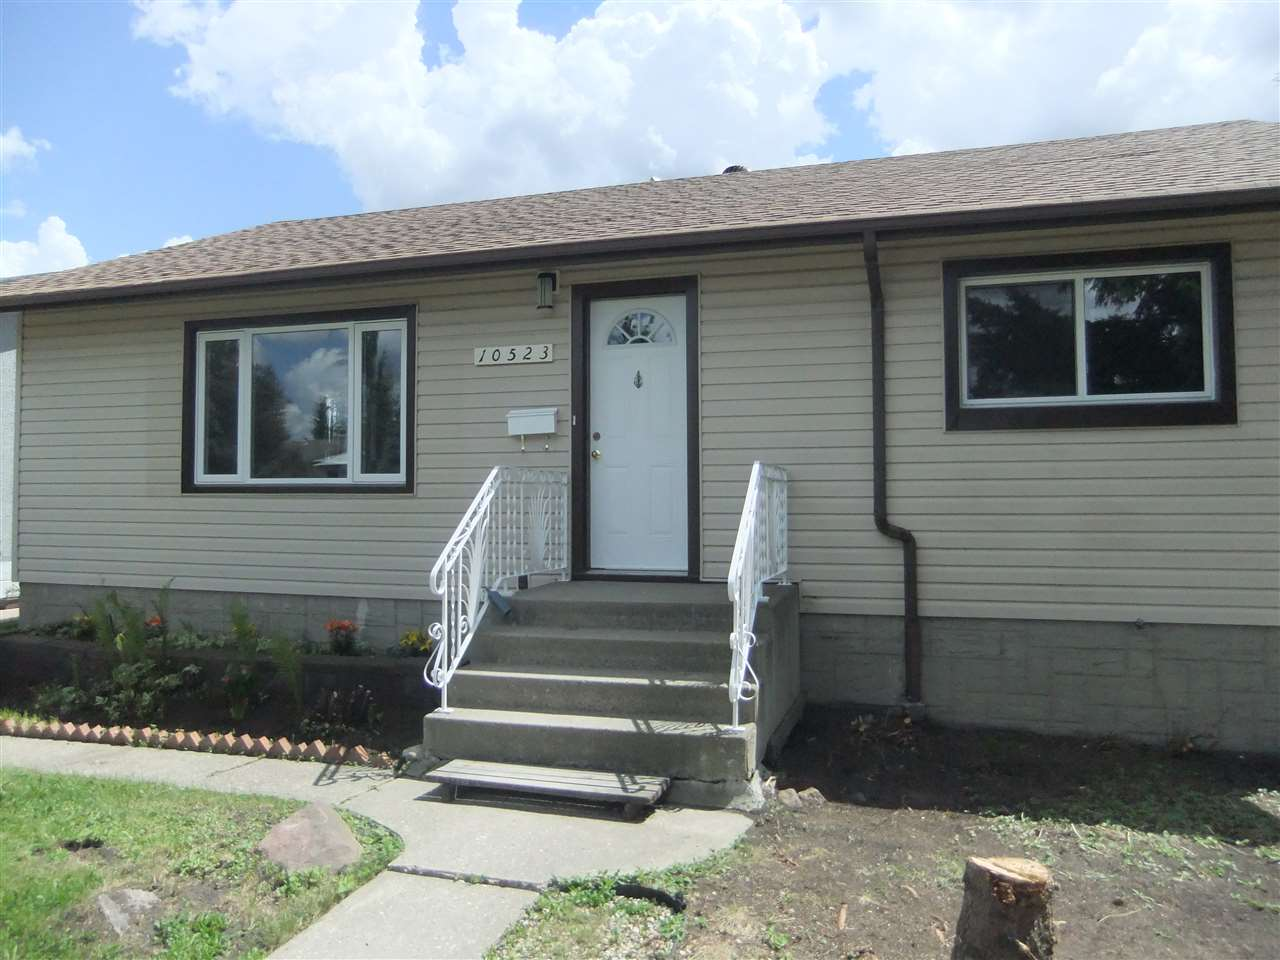 Main Photo: 10523 40 Street NW in Edmonton: Zone 19 House for sale : MLS(r) # E4069760